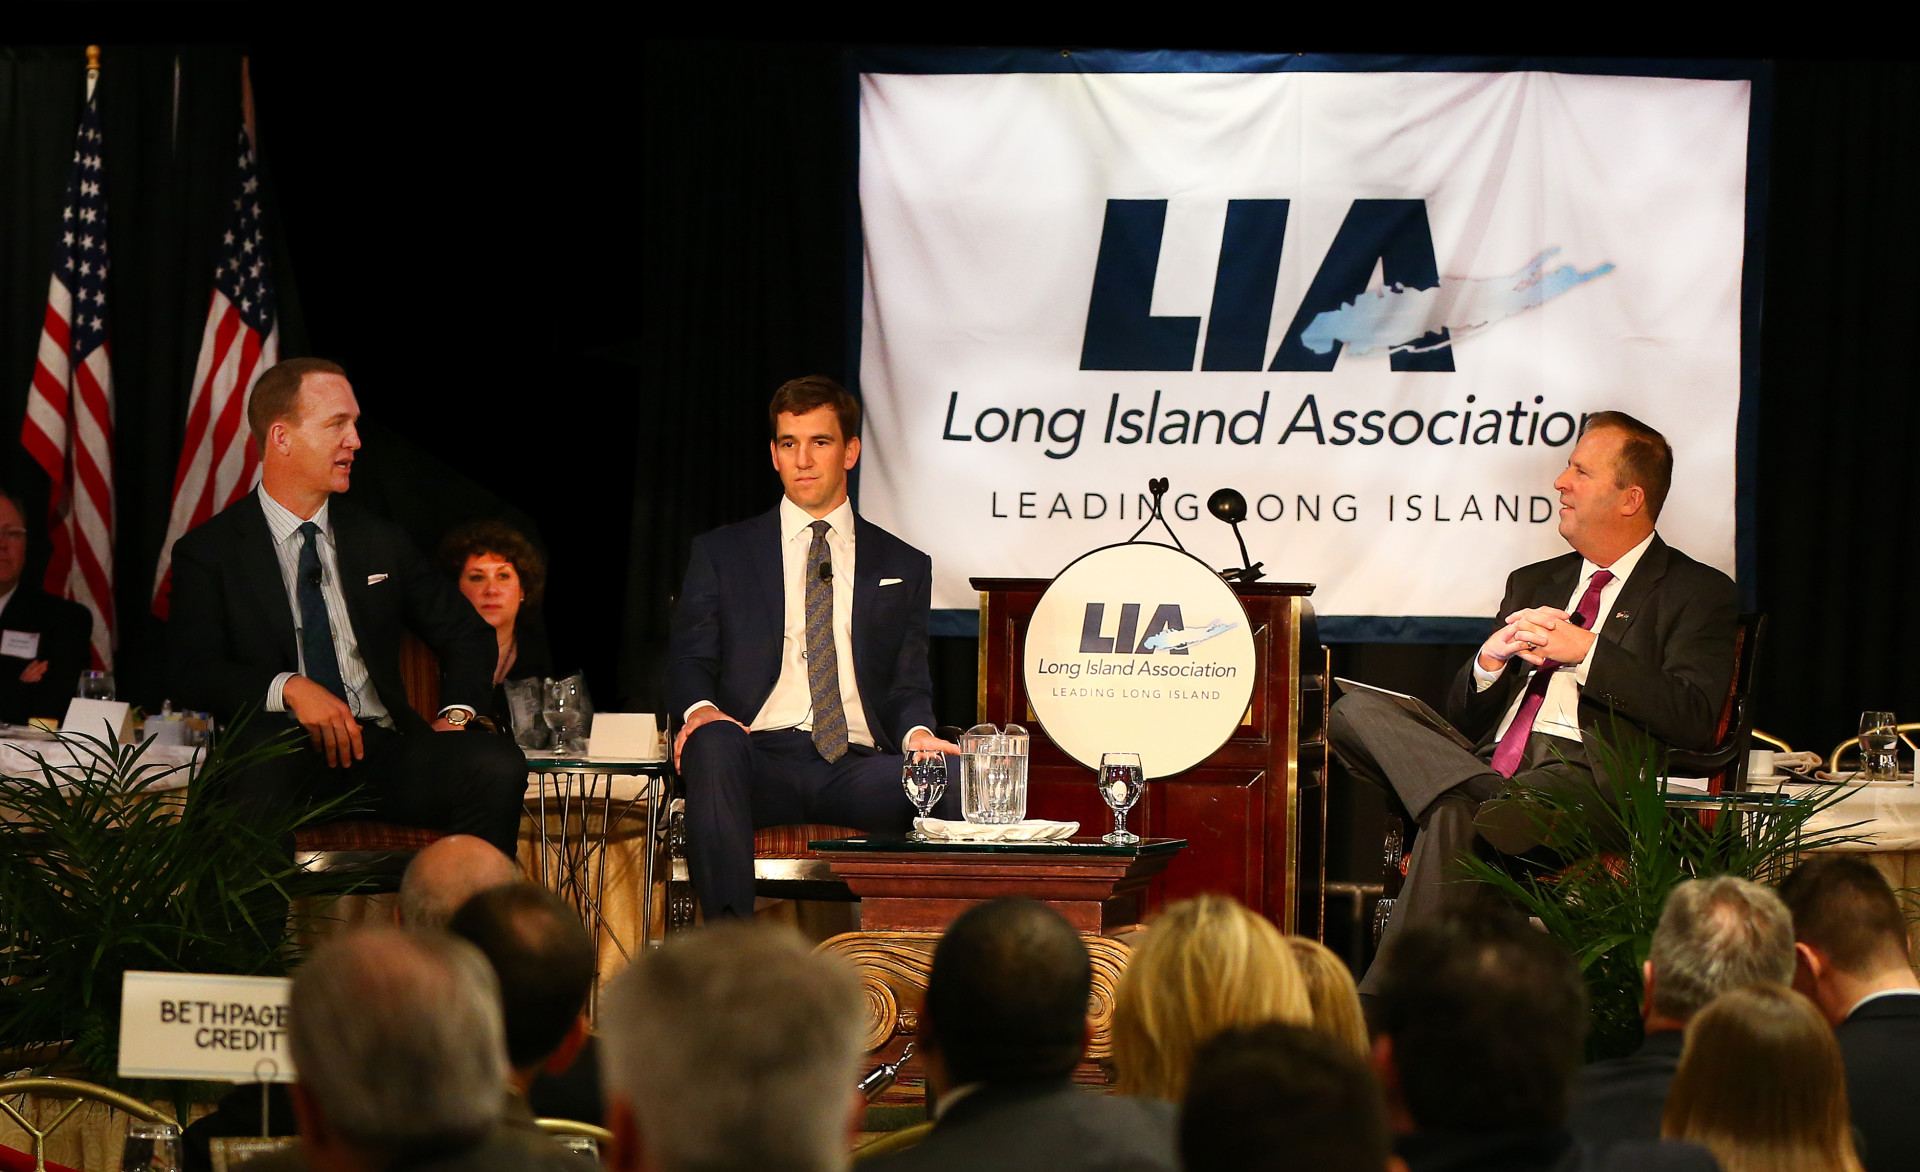 The Advantages You Can Get from Long Island Association